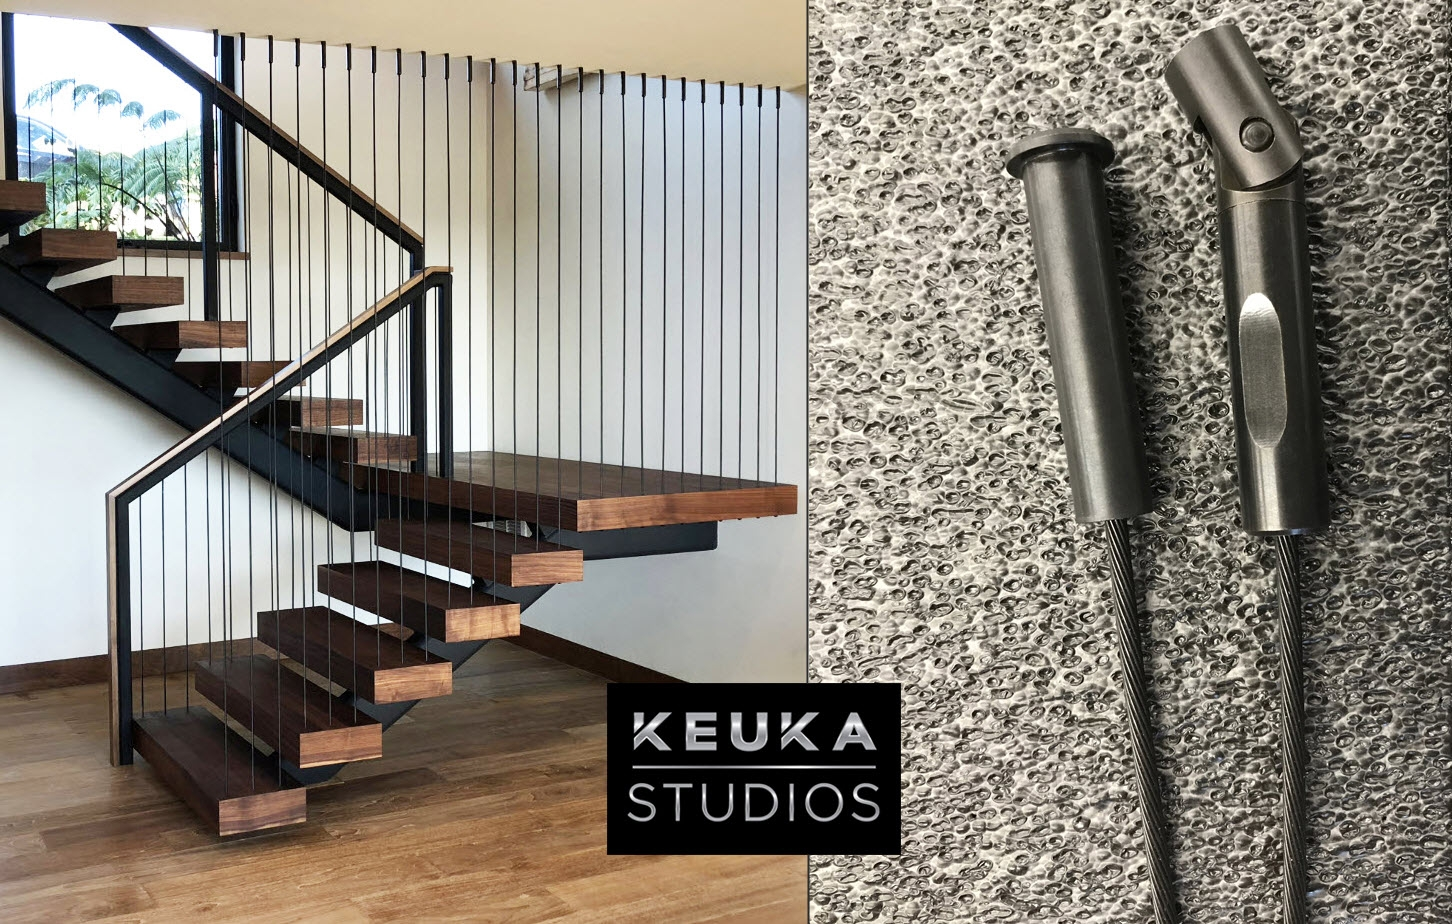 Black Stainless Steel Cable Railing And Fittings Keuka Studios   Steel Cable Stair Railing   Diy   White   Balcony   Steel Wire   Industrial